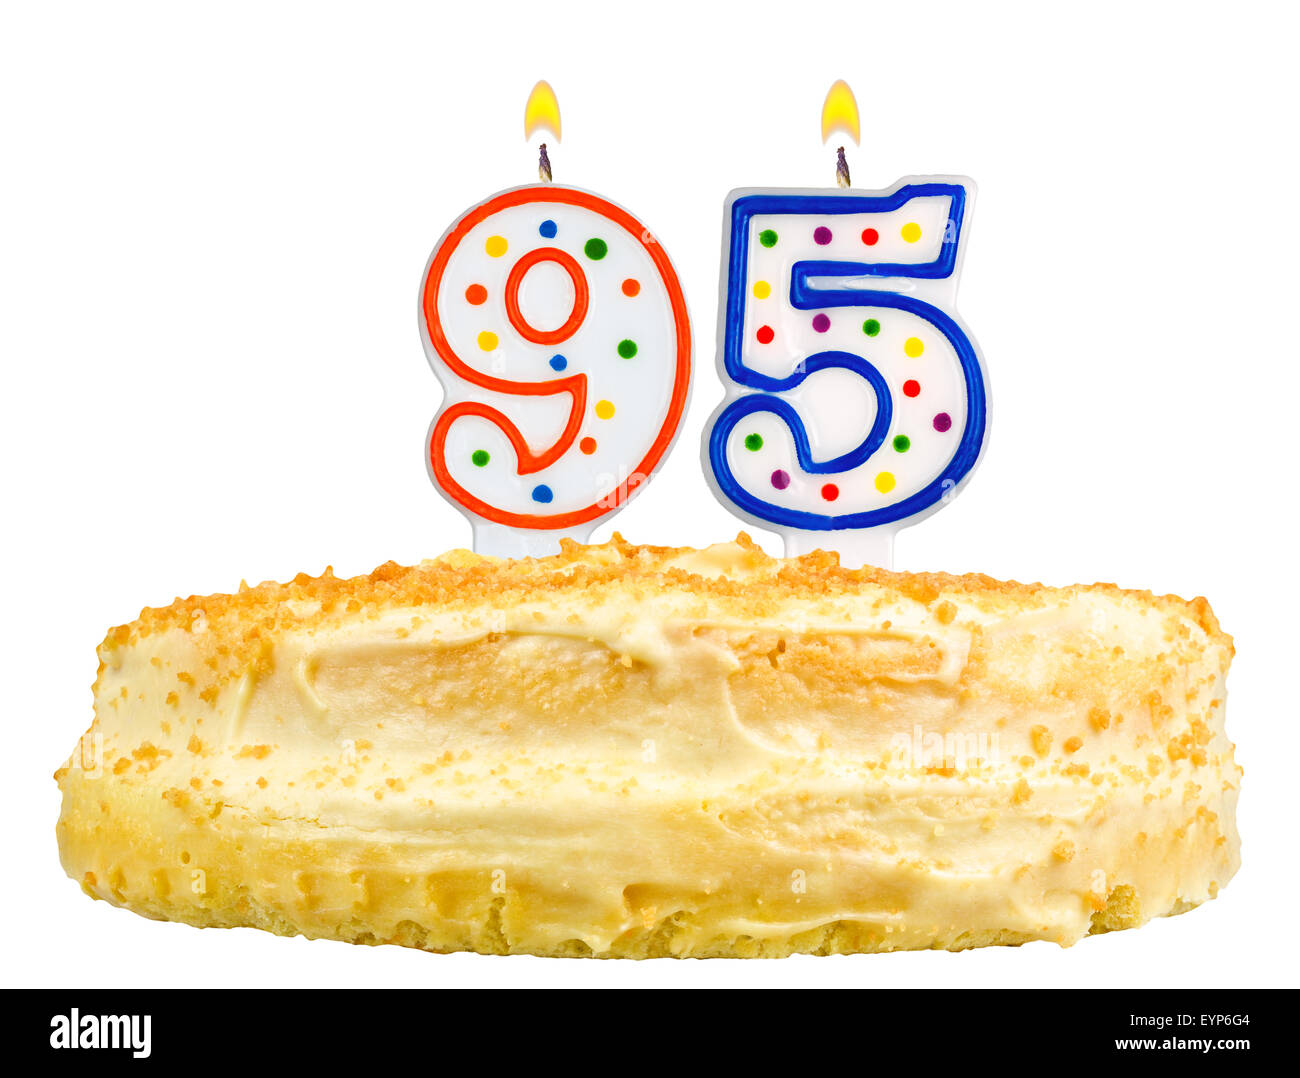 Diagram Birthday Cake Candles Number 95 Isolated Stock Photo